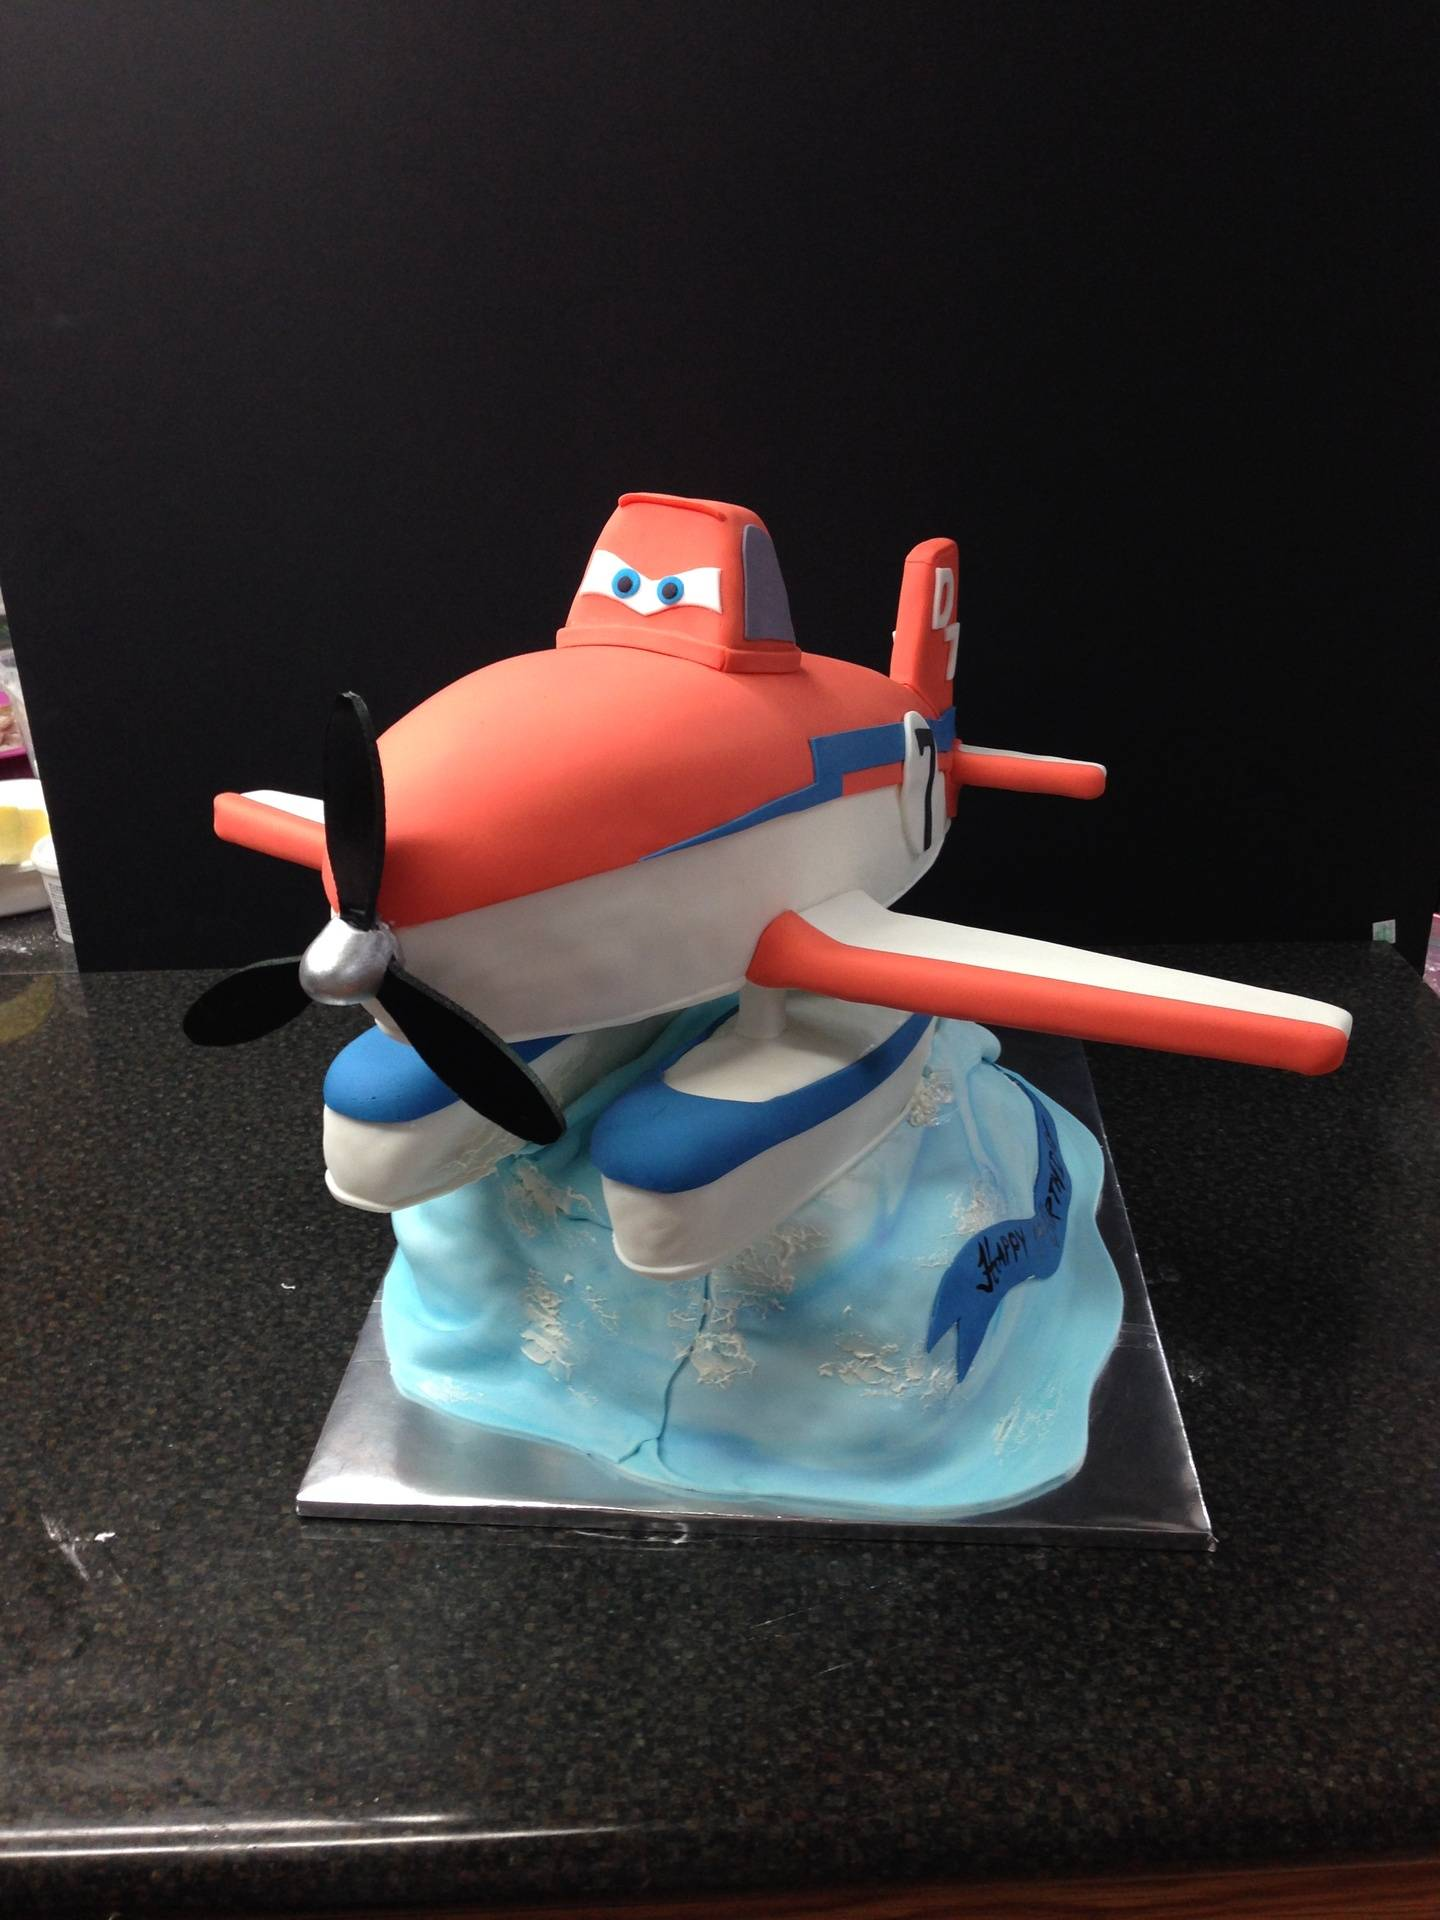 Disney Planes Fire & Rescue Cake